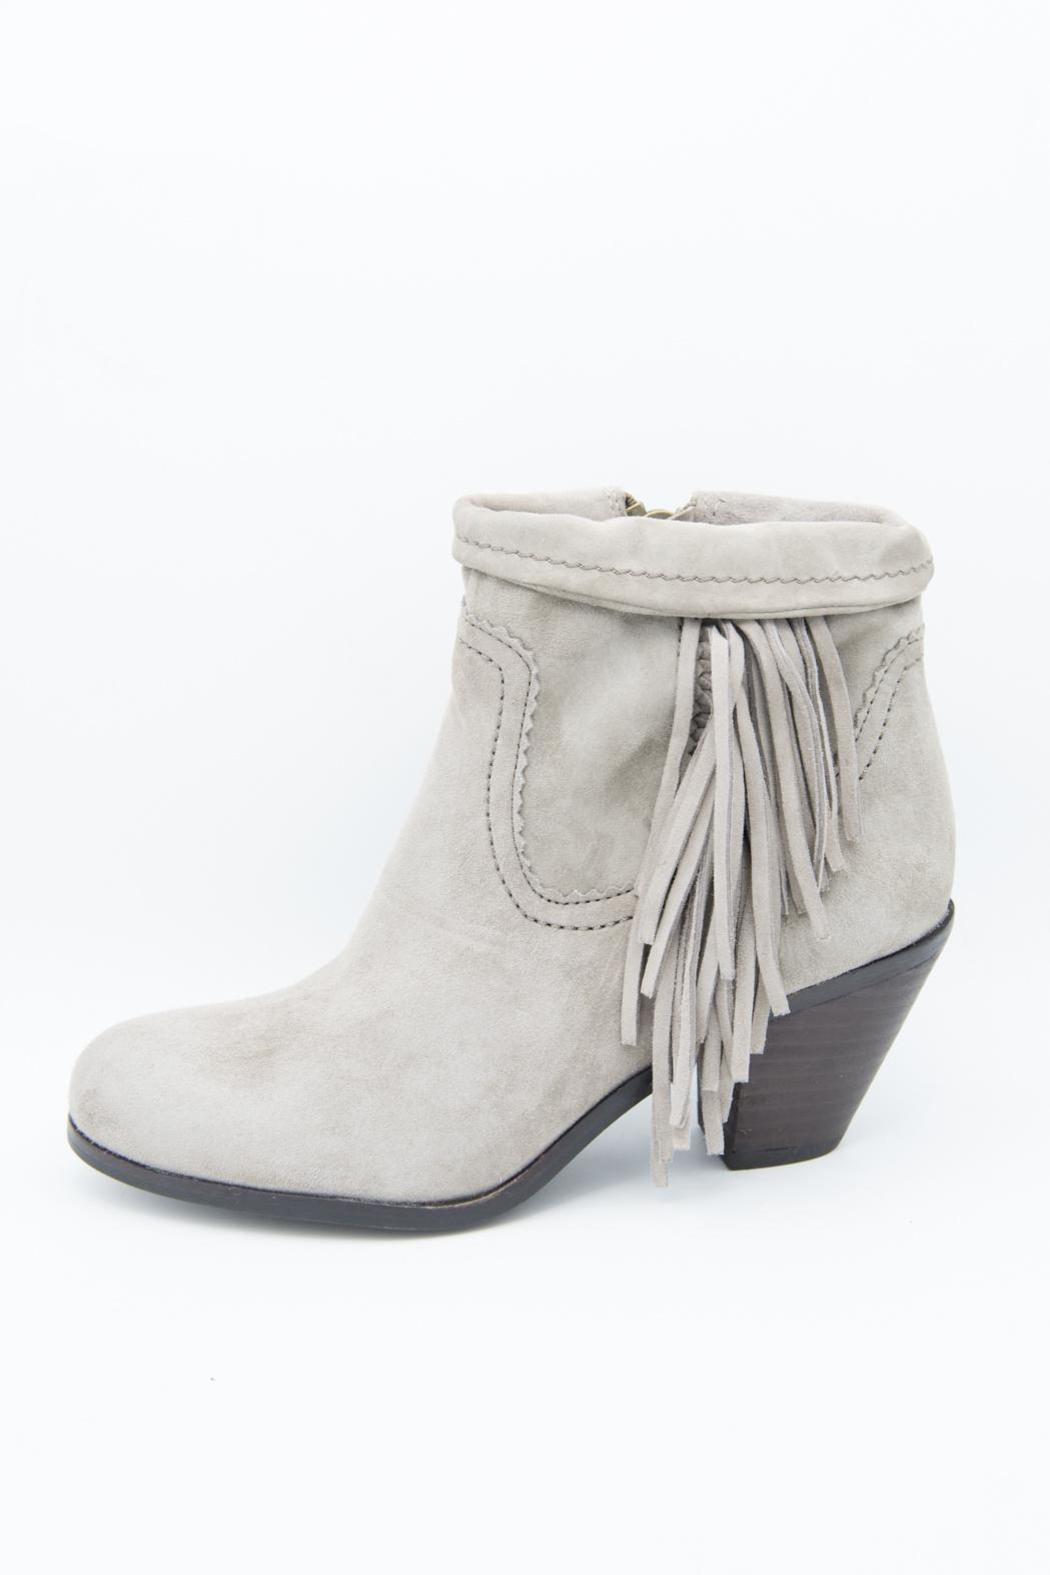 f3e15b6775afca Sam Edelman Louie Suede Bootie from Colorado by Hoity Toity Boutique ...